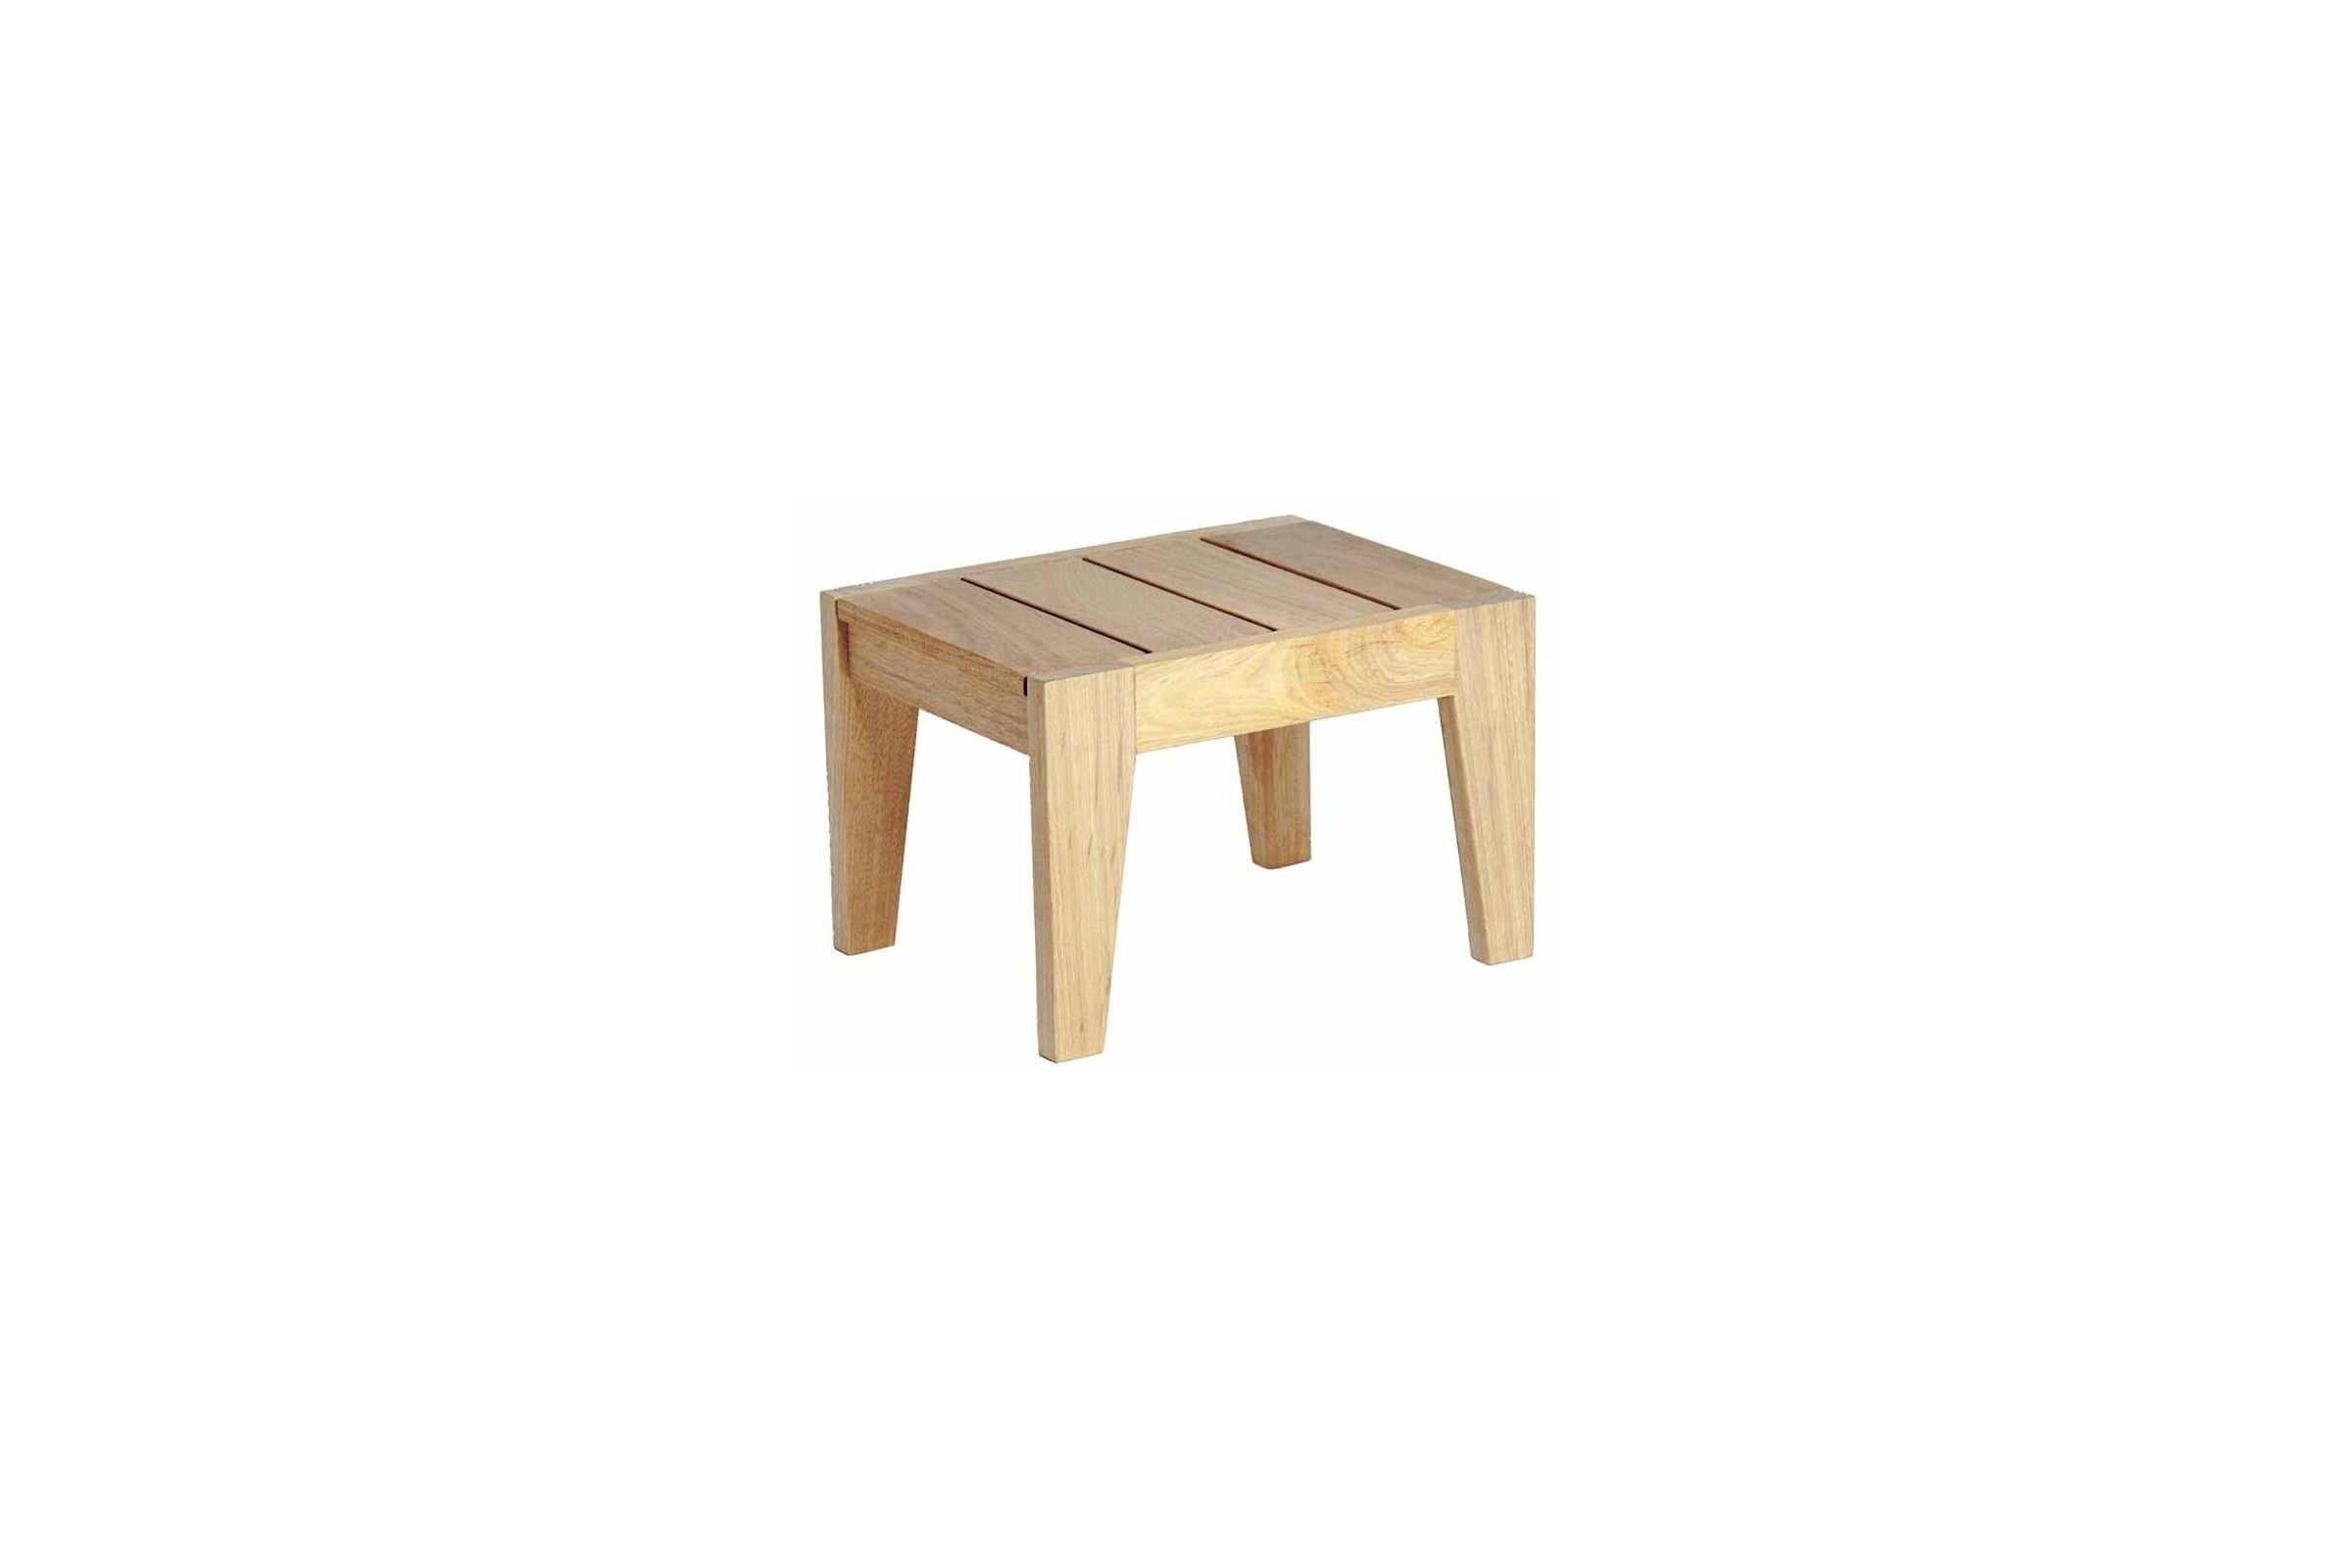 petite table basse en bois pour bain de soleil haut de. Black Bedroom Furniture Sets. Home Design Ideas